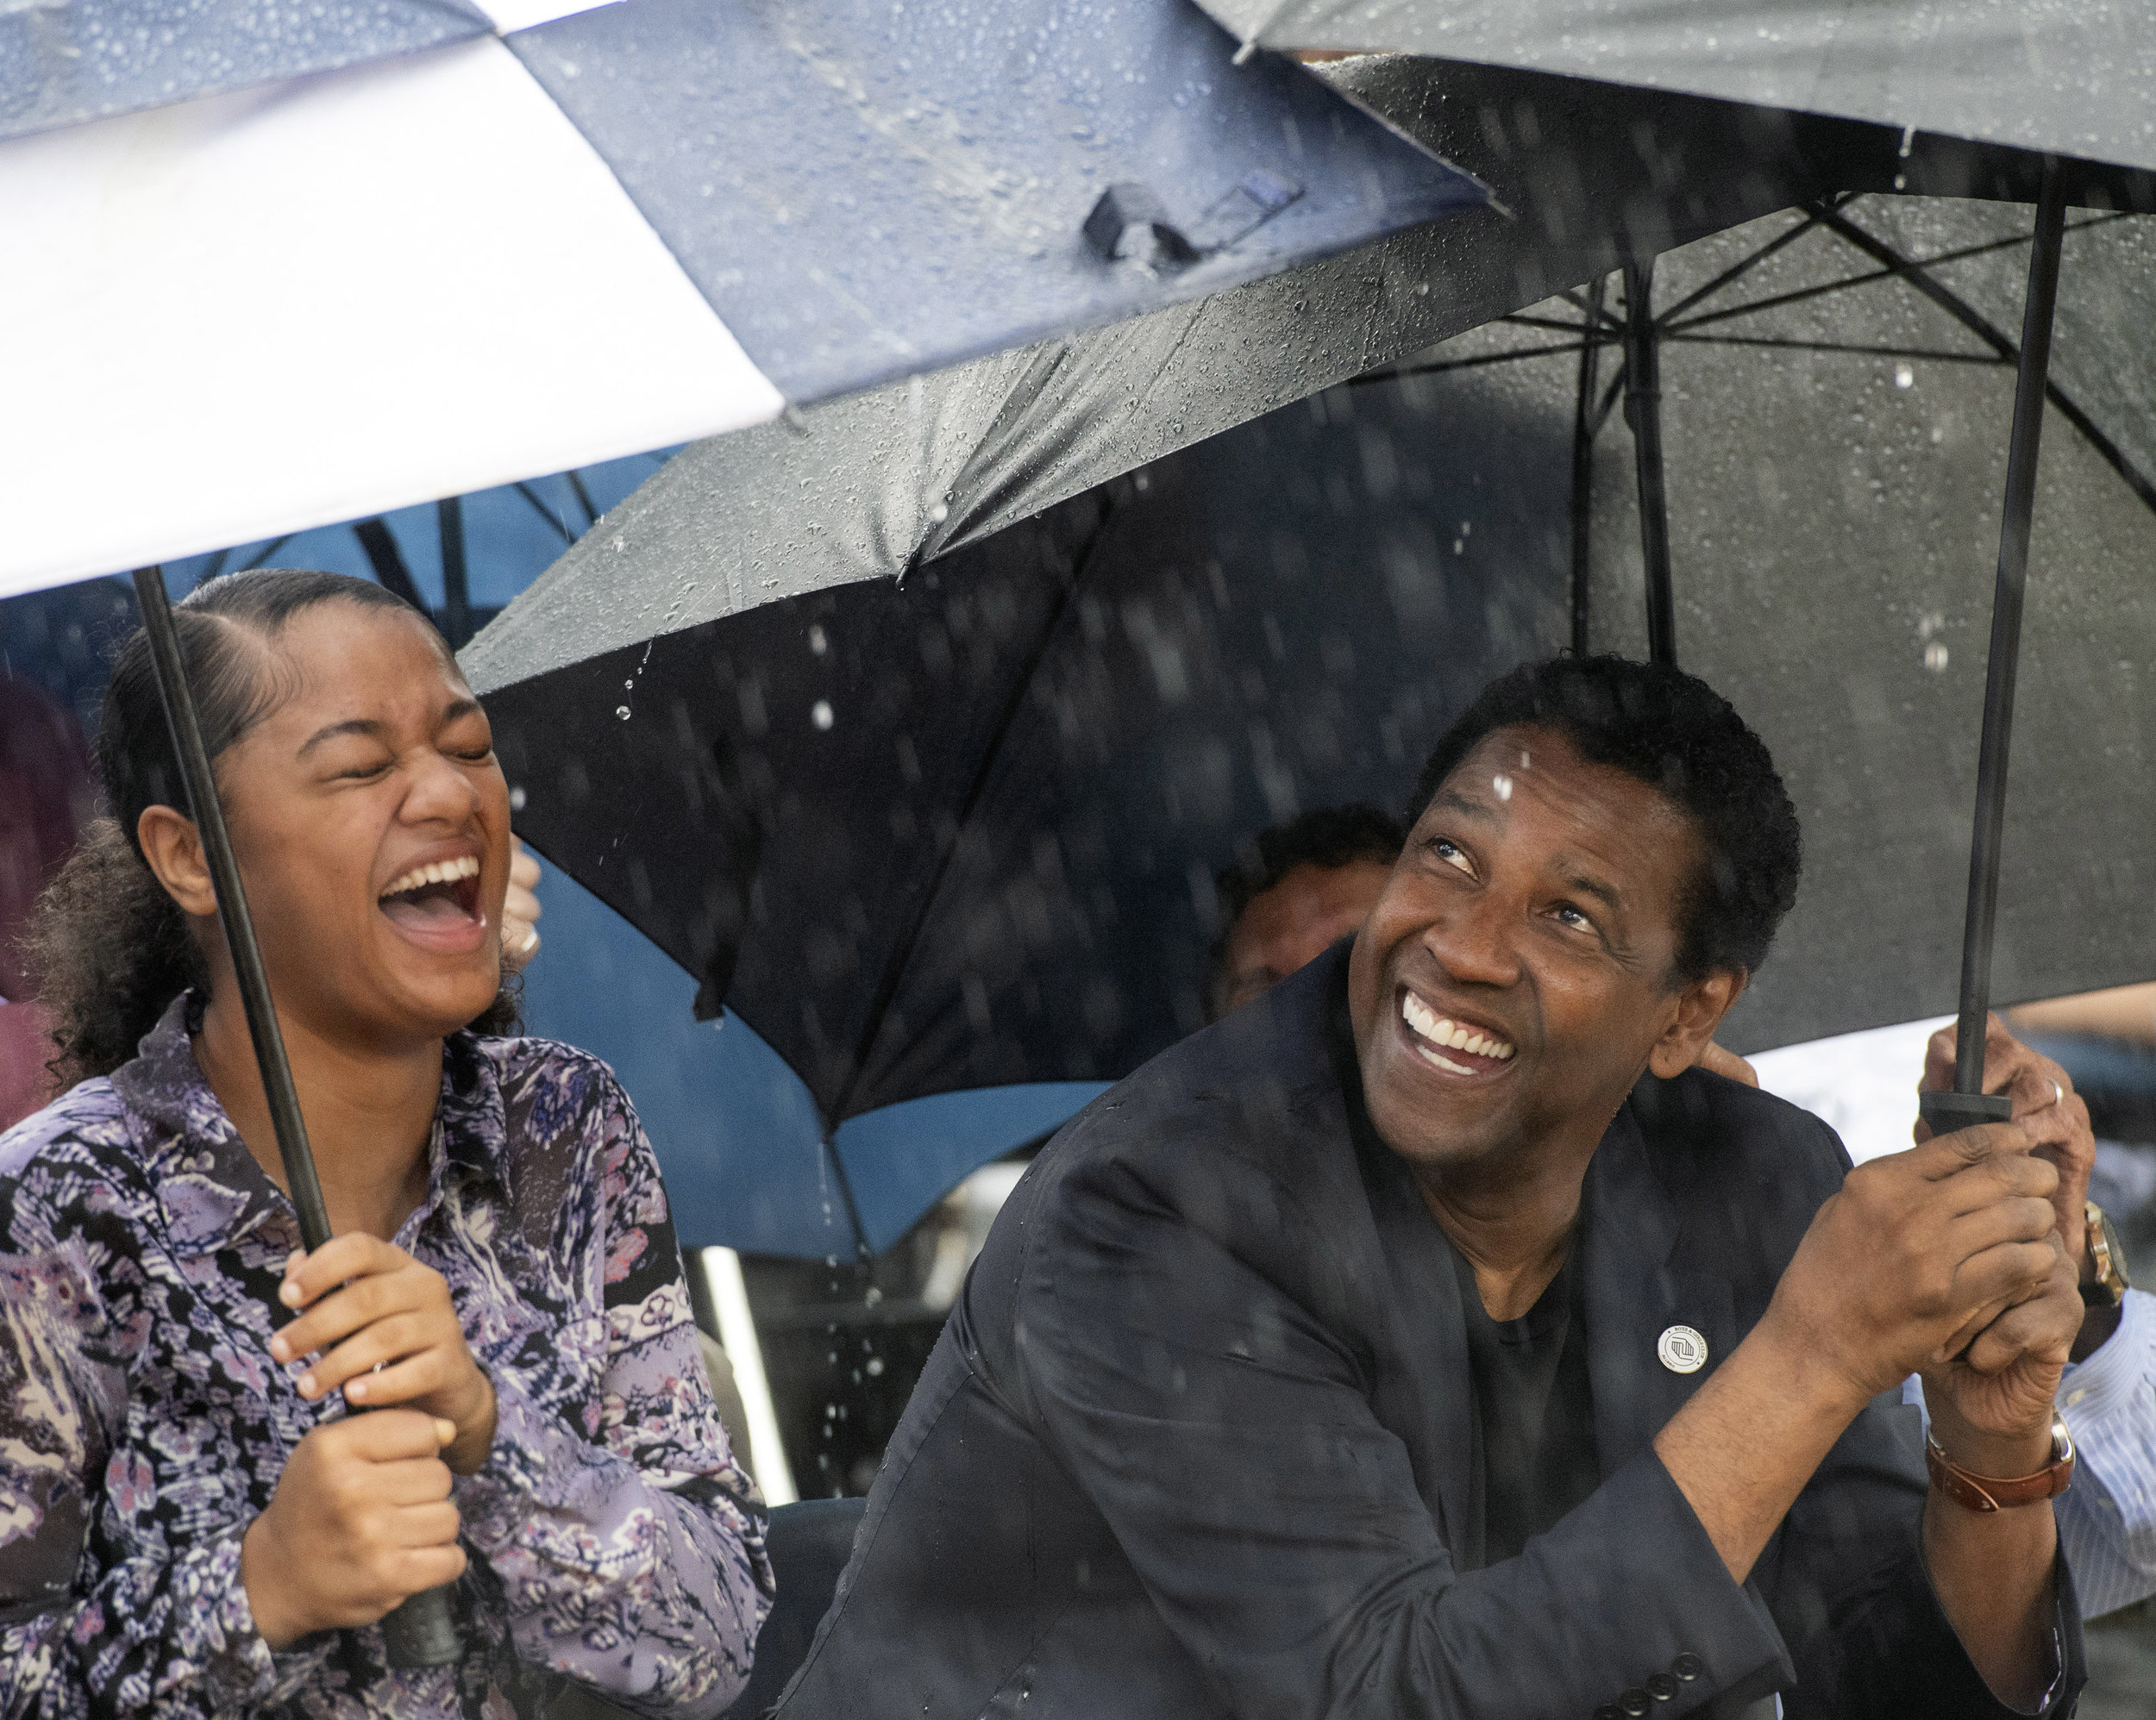 """Jamaica Johnson, an 11th-grader at Pittsburgh CAPA, and Denzel Washington share a moment during a """"ground blessing"""" at the August Wilson House on Wednesday,when the actor announced $5 million in support of the projects at the playwright's childhood home. Jamaica performed a monologue from """"King Hedley II"""" at the ceremony. (Steph Chambers/Post-Gazette)"""